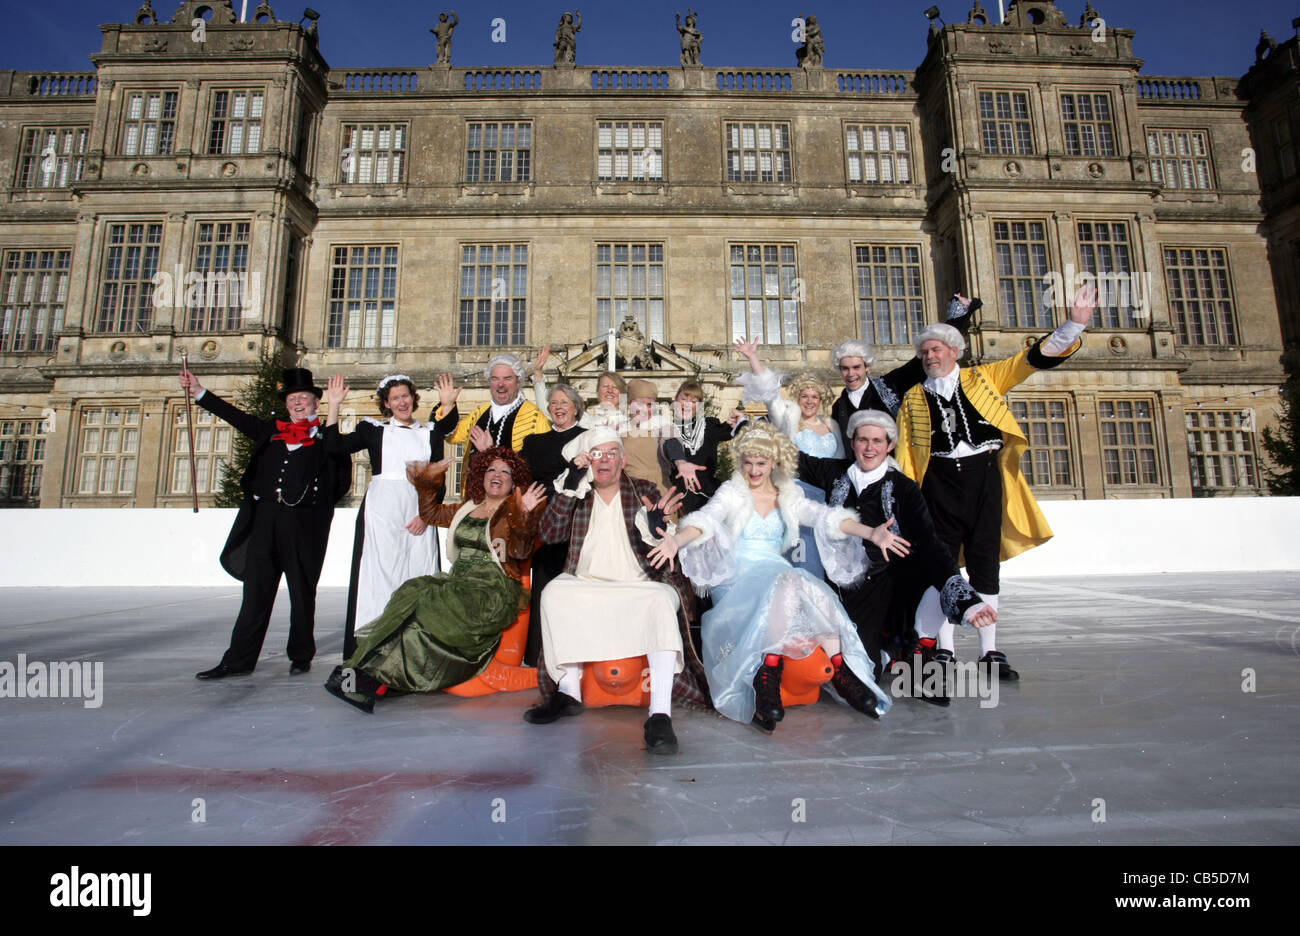 Fairytale characters pose on an ice rink at Longleat House, the ancestral home of Lord Bath, in Wiltshire, England. Stock Photo